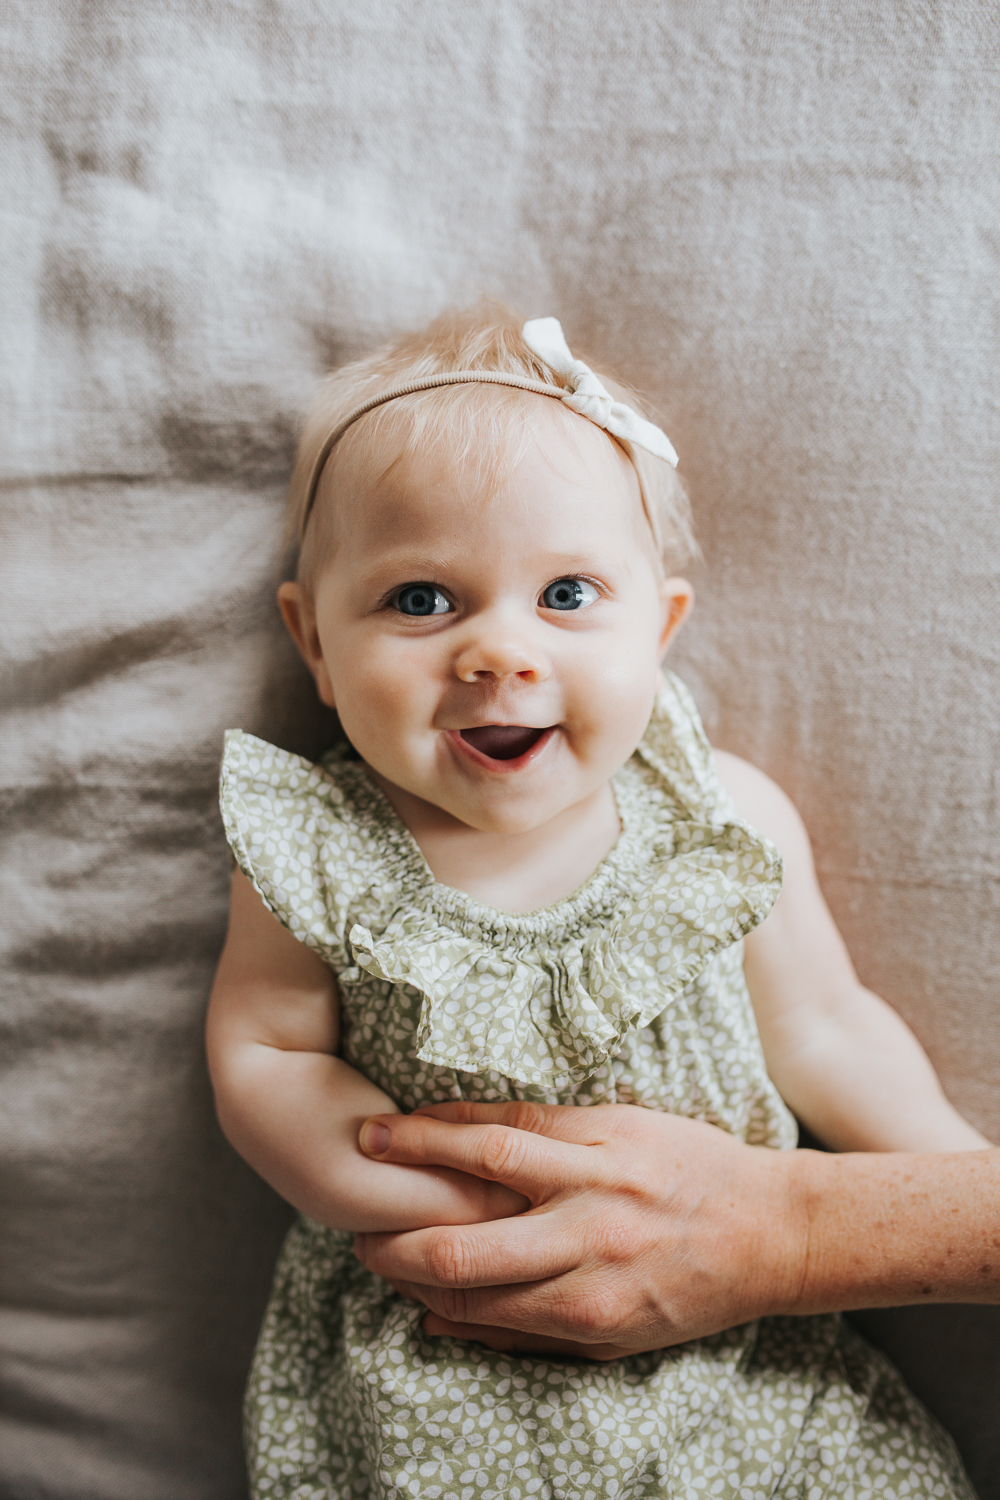 6 month old baby girl with blonde hair and blue eyes lying on bed smiling -Barrie Family Lifestyle Photography